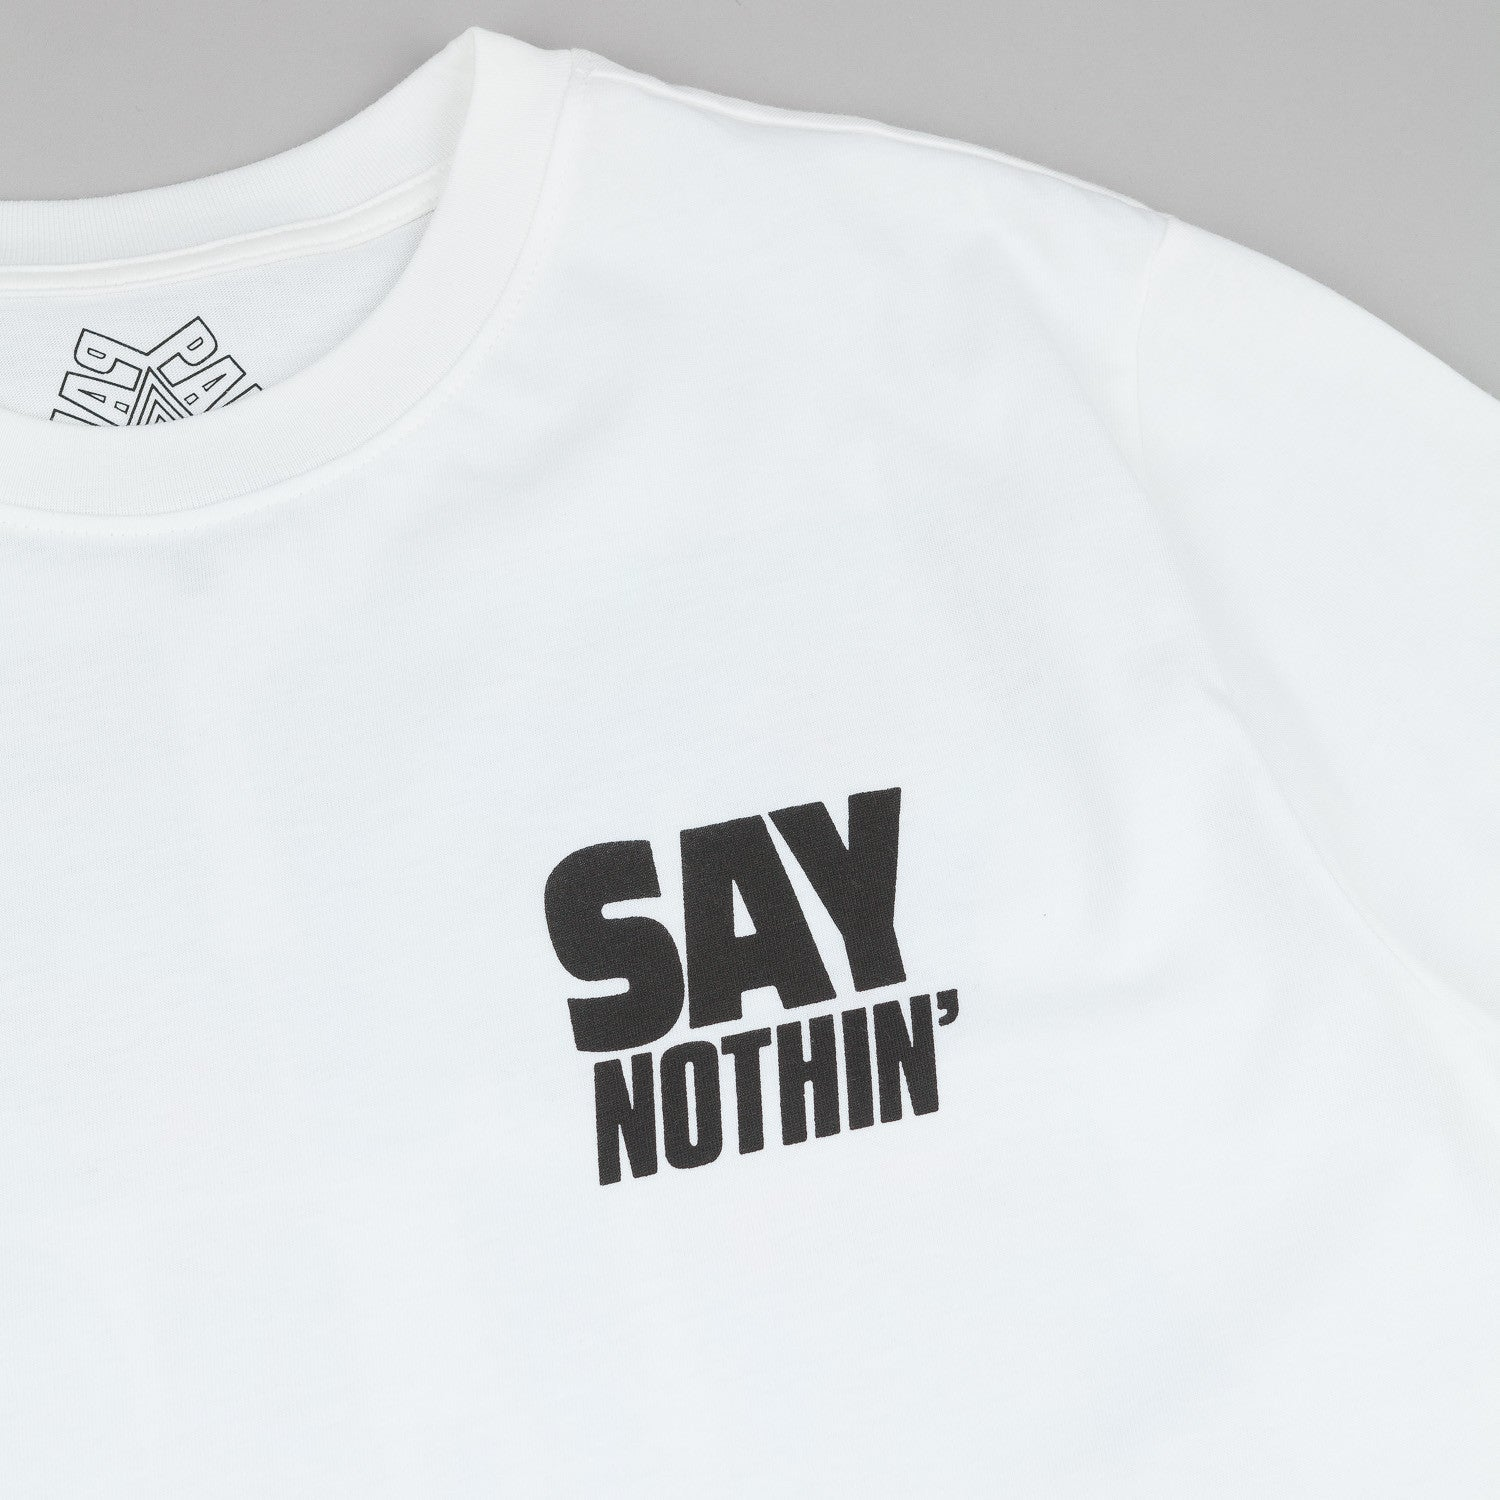 Palace Say Nothin' T-Shirt - White